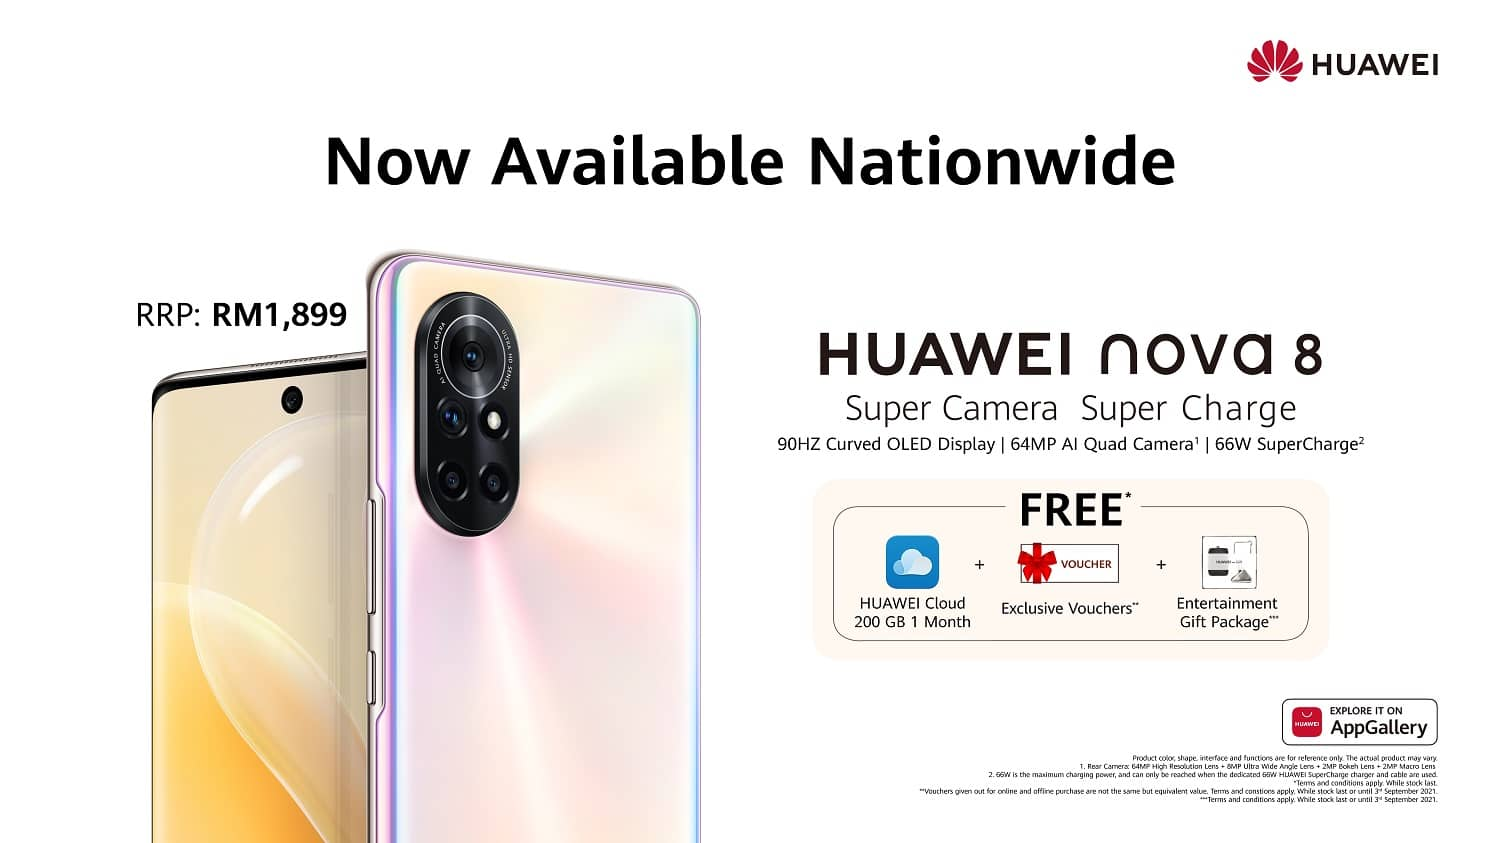 HUAWEI nova 8 Officially Launches in Malaysia, Priced at RM1,899